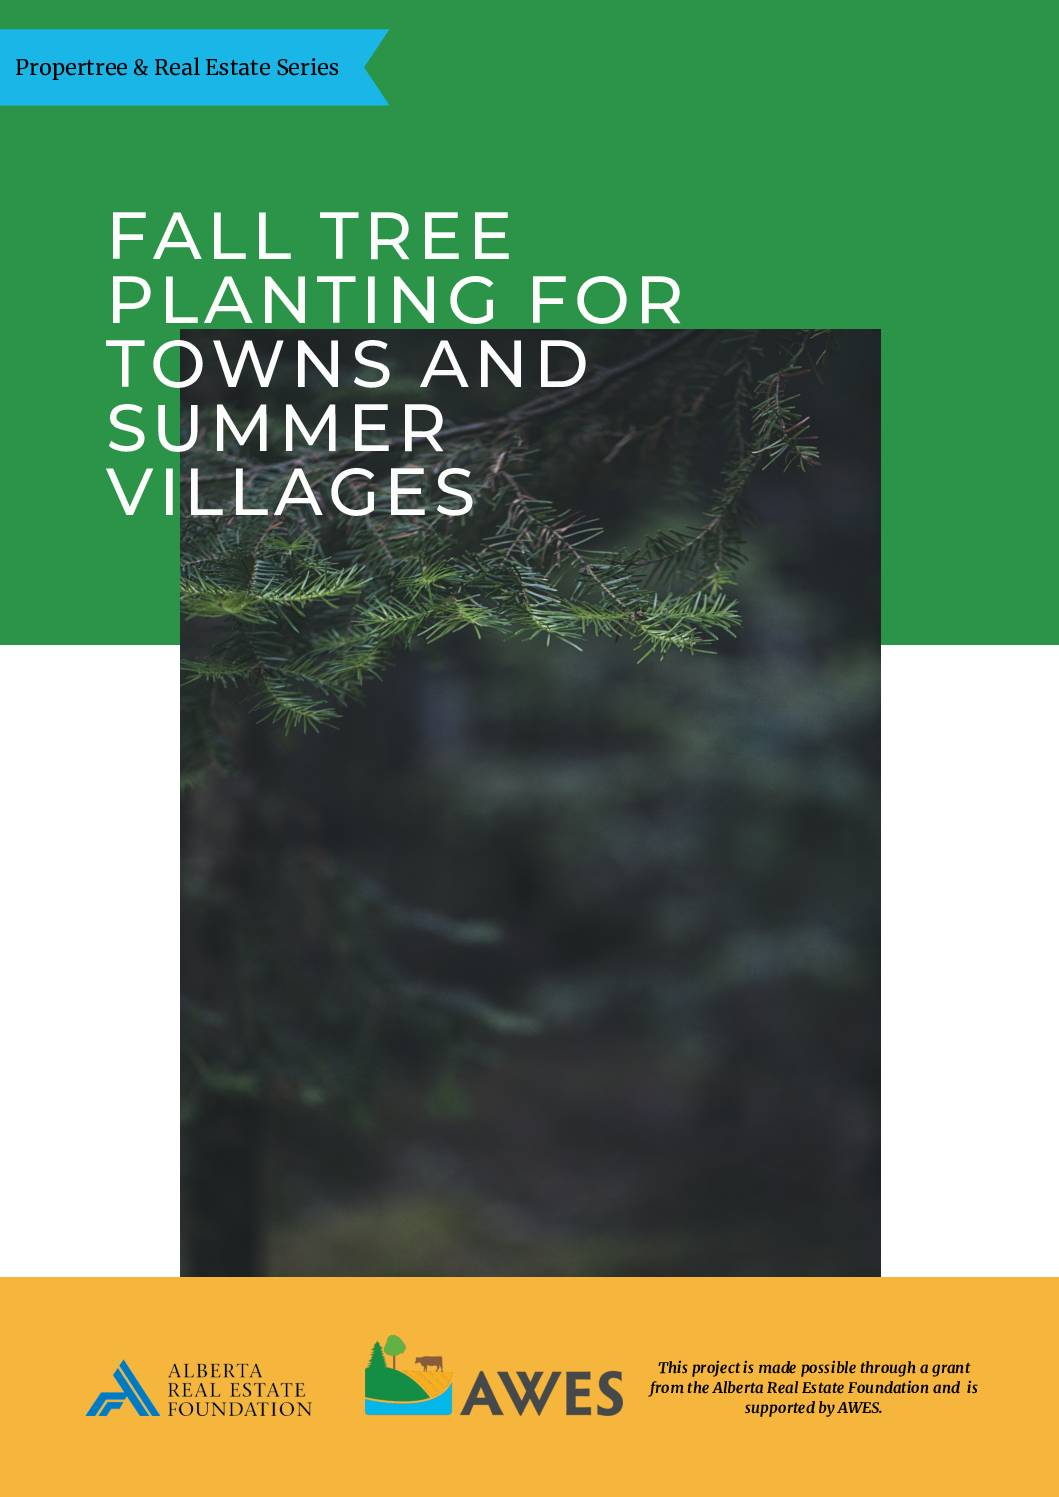 Fall Tree Planting for Towns and Summer Villages